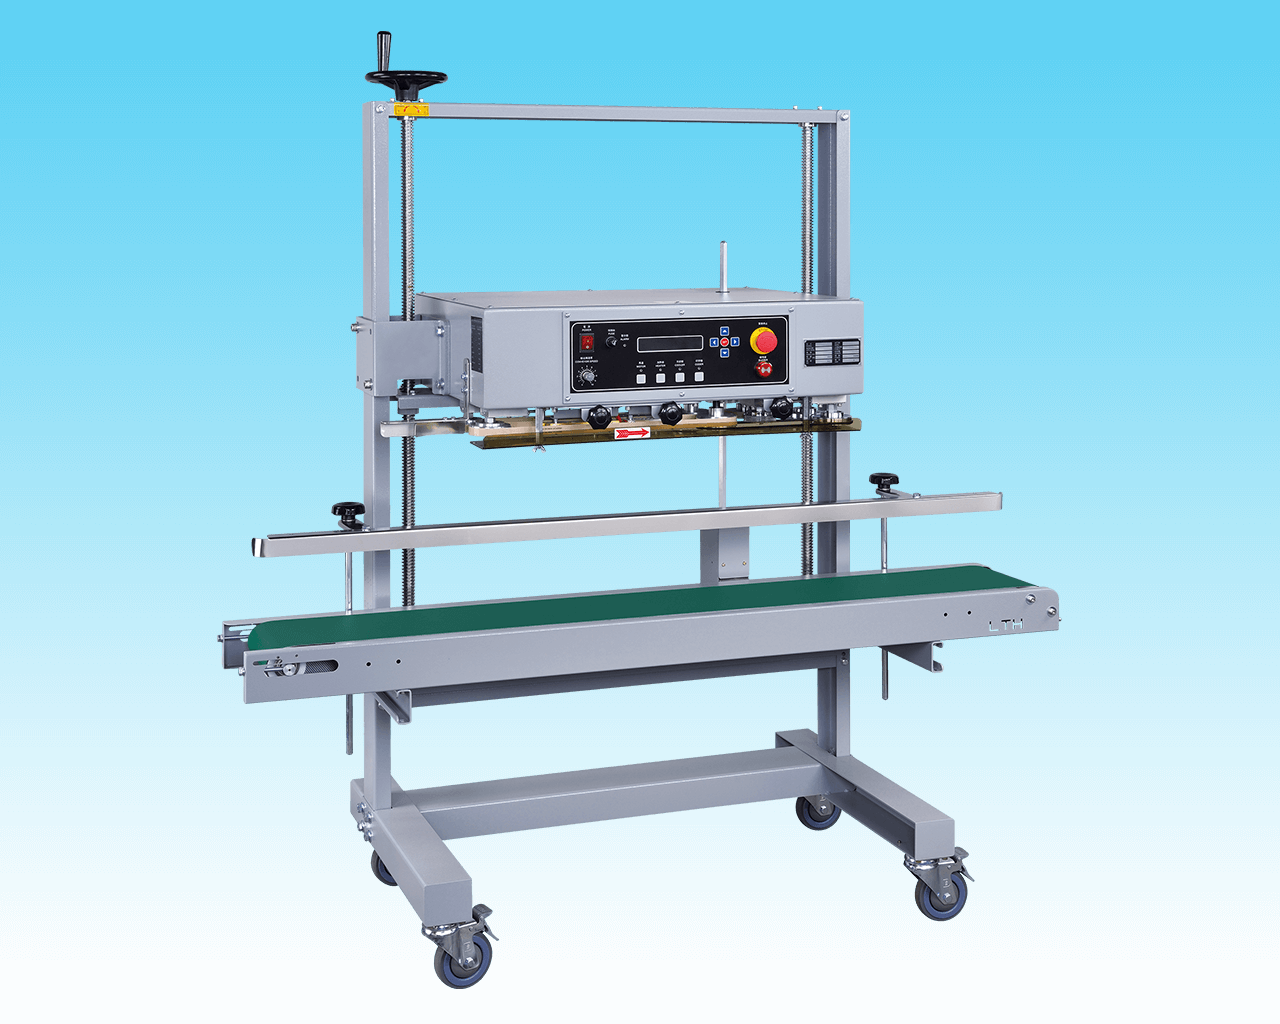 sealer machine、band sealer、band sealing、sealing packaging、sealing packaging machine、sealing machinery